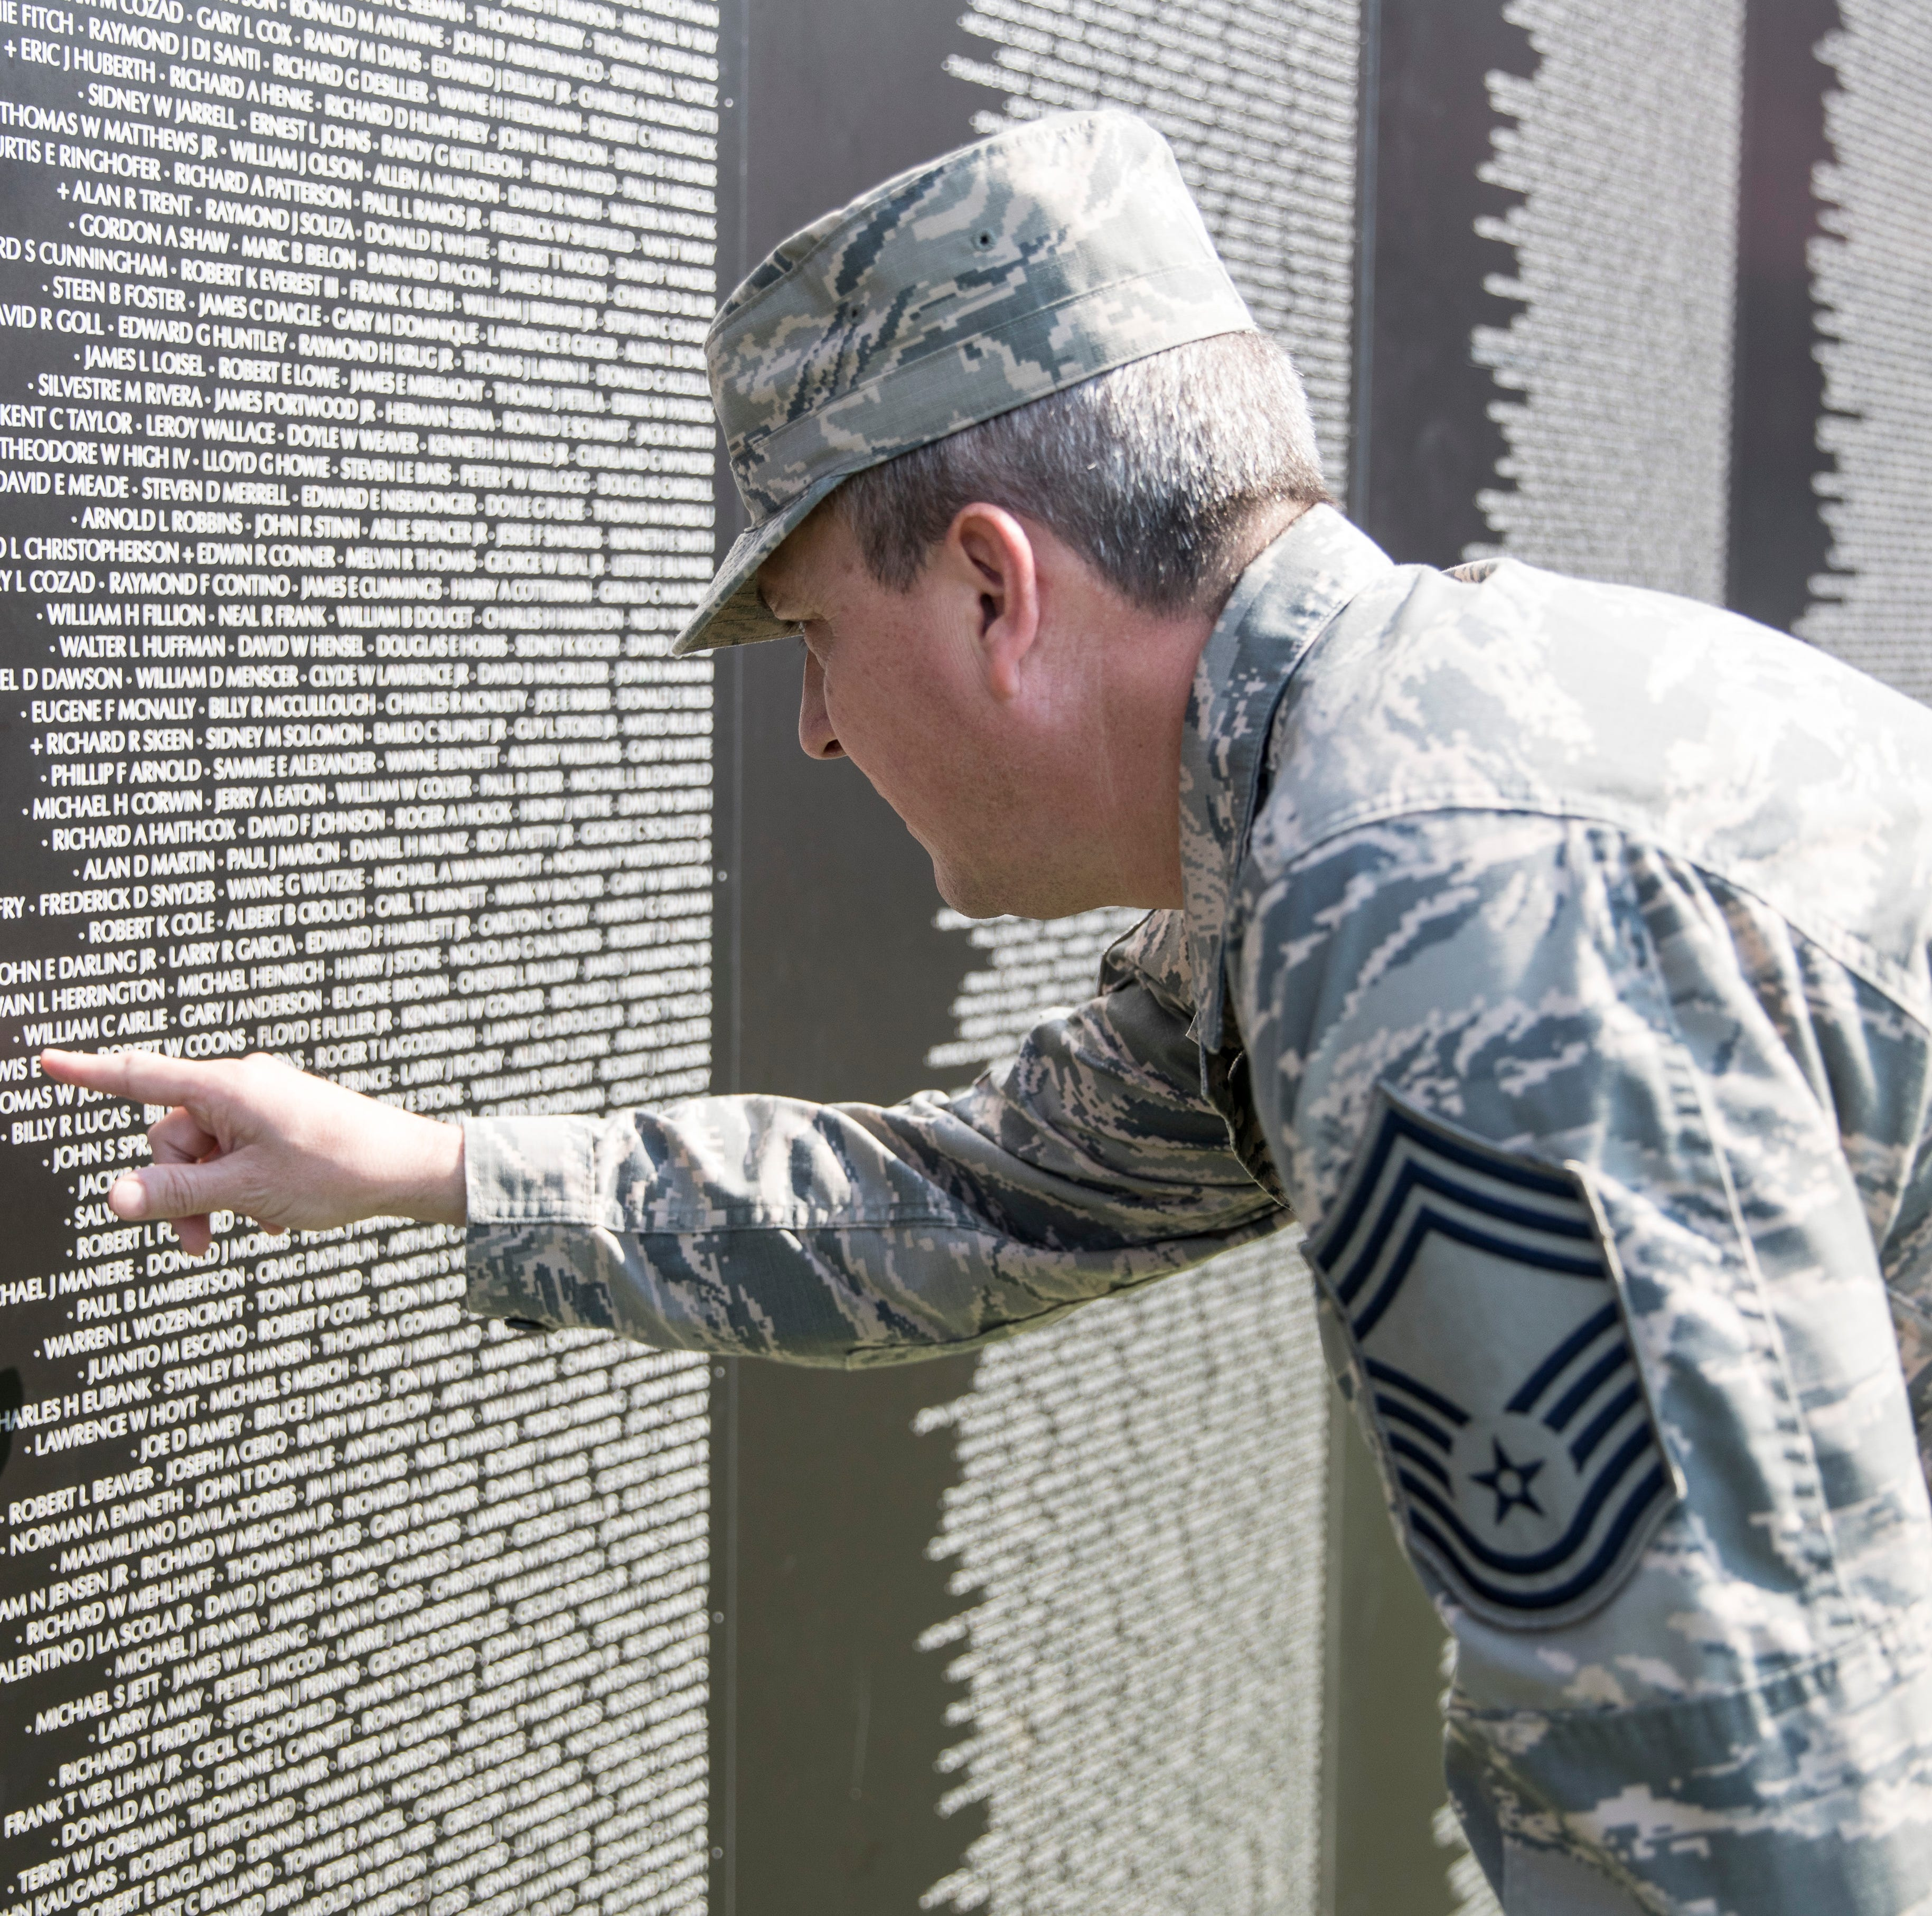 Traveling Vietnam wall visit is more than just the stories behind the names